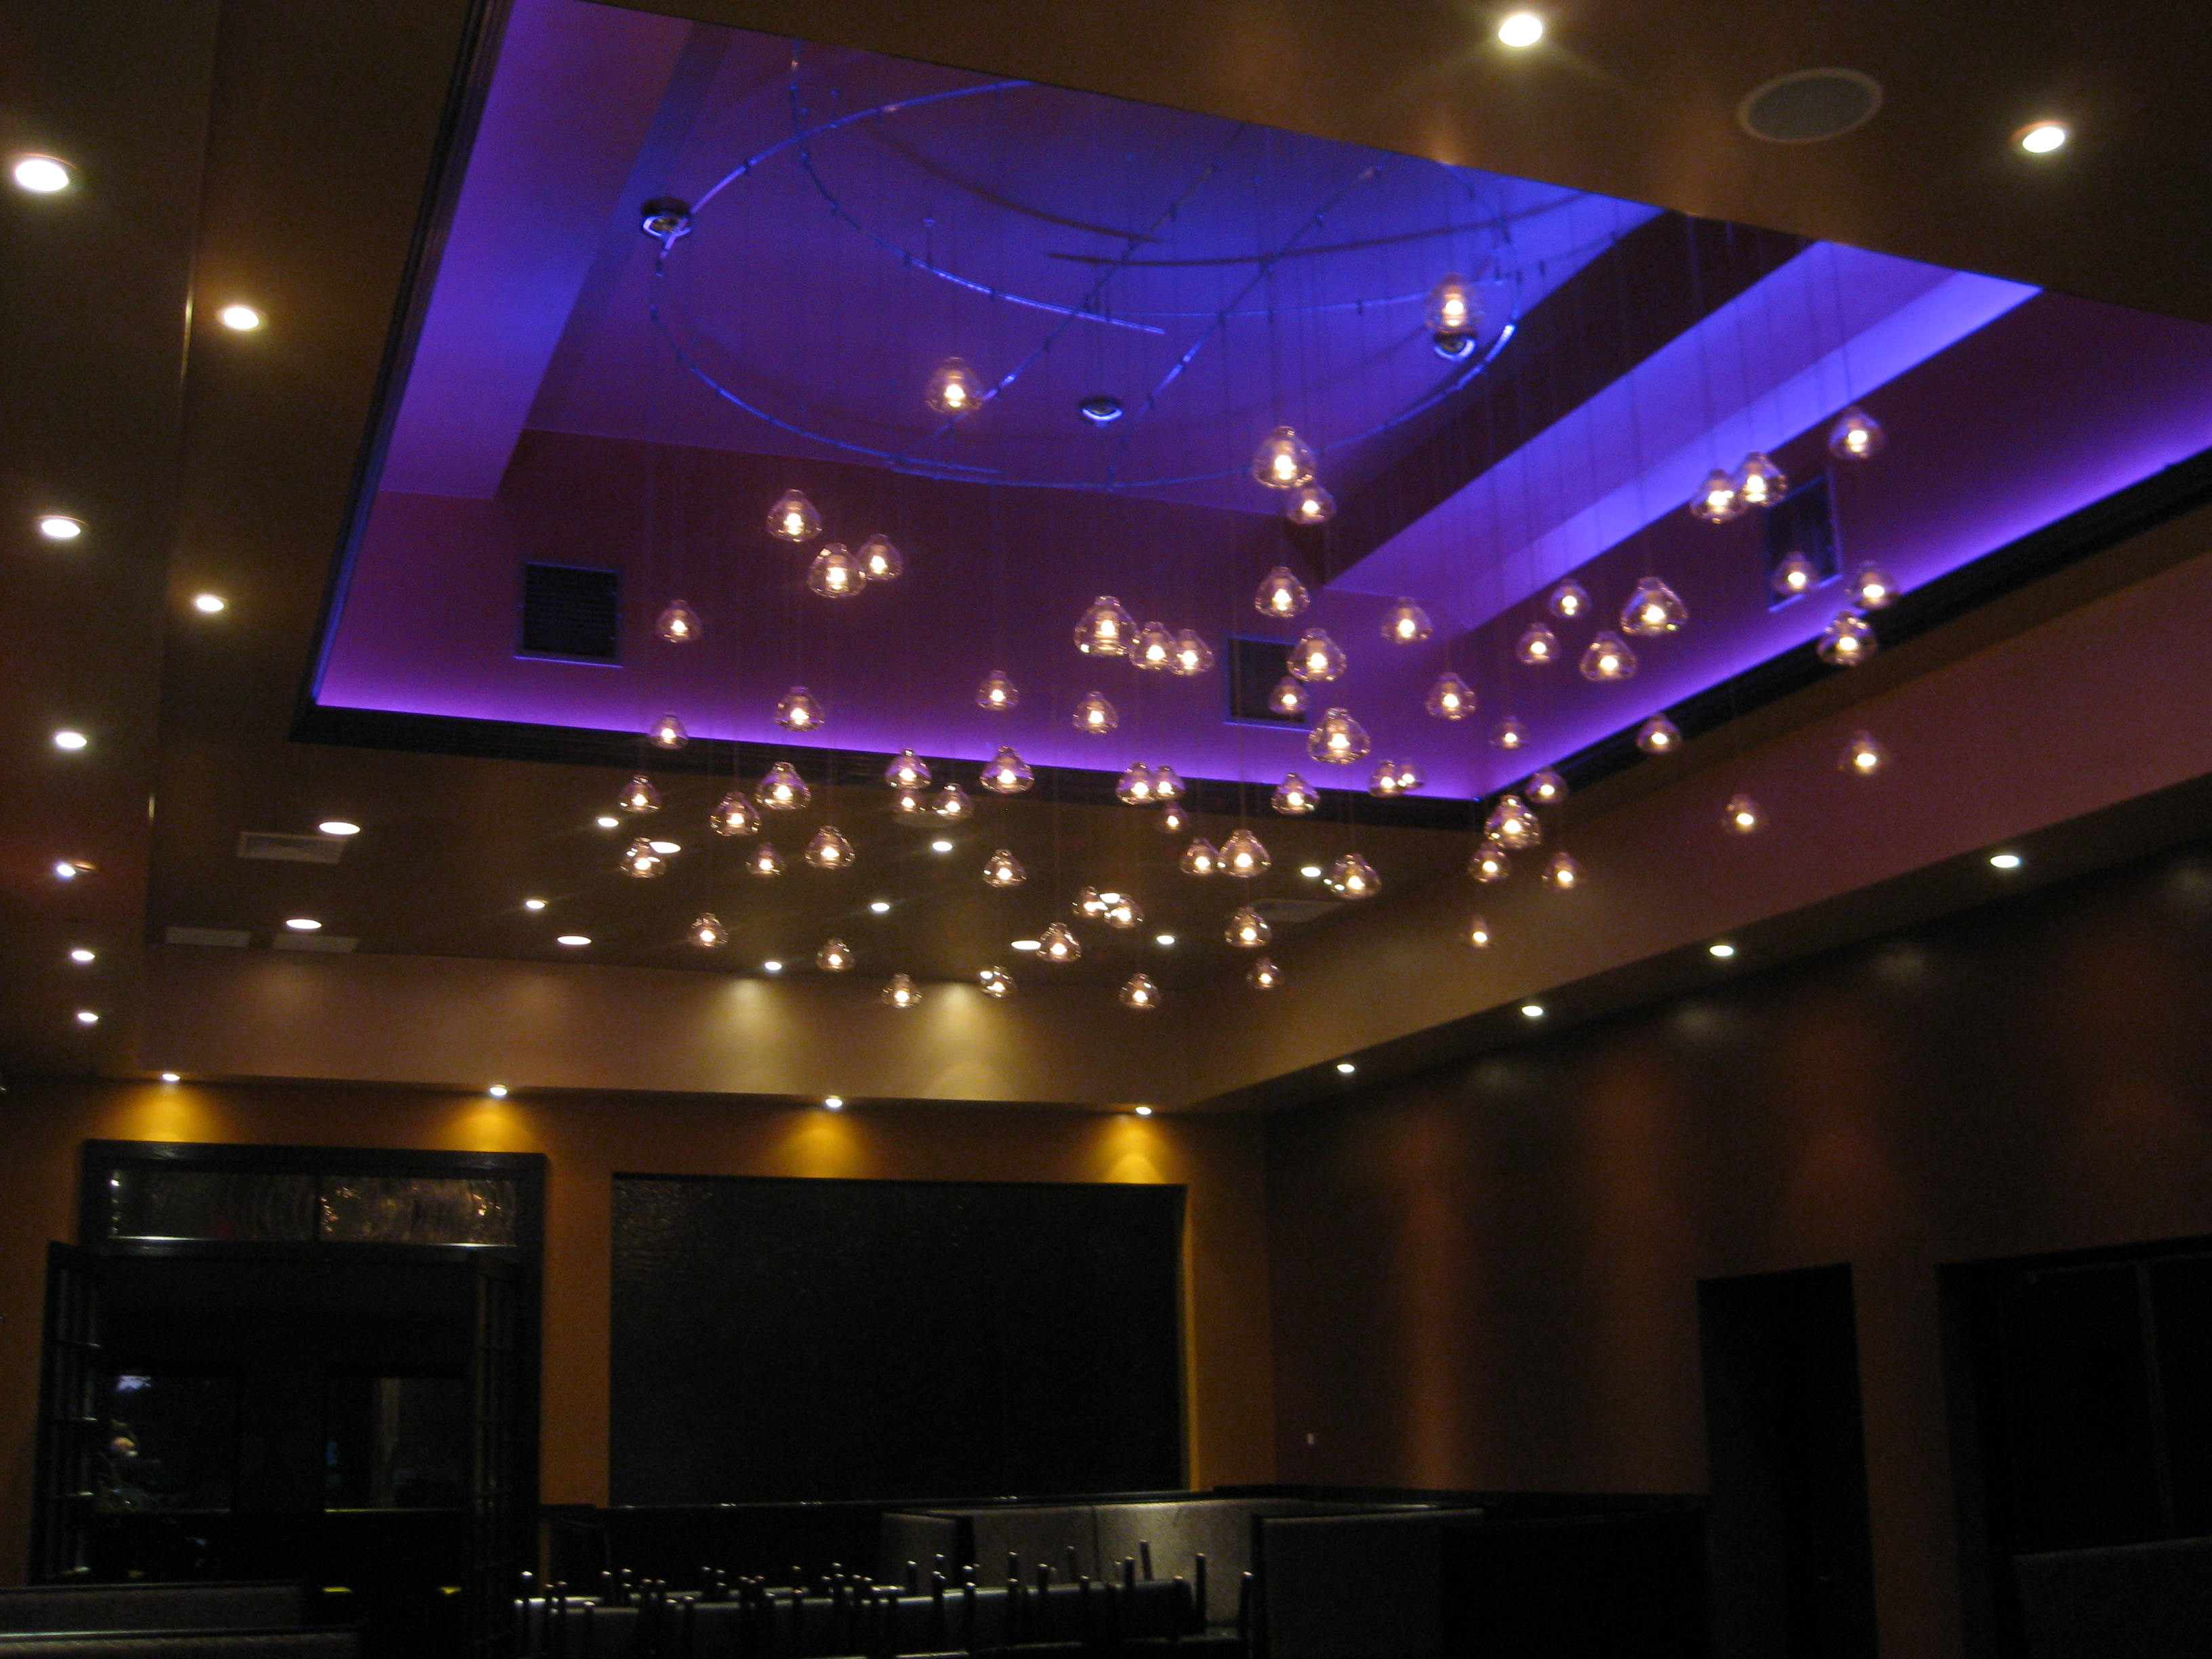 led ceiling lights recessed photo - 2